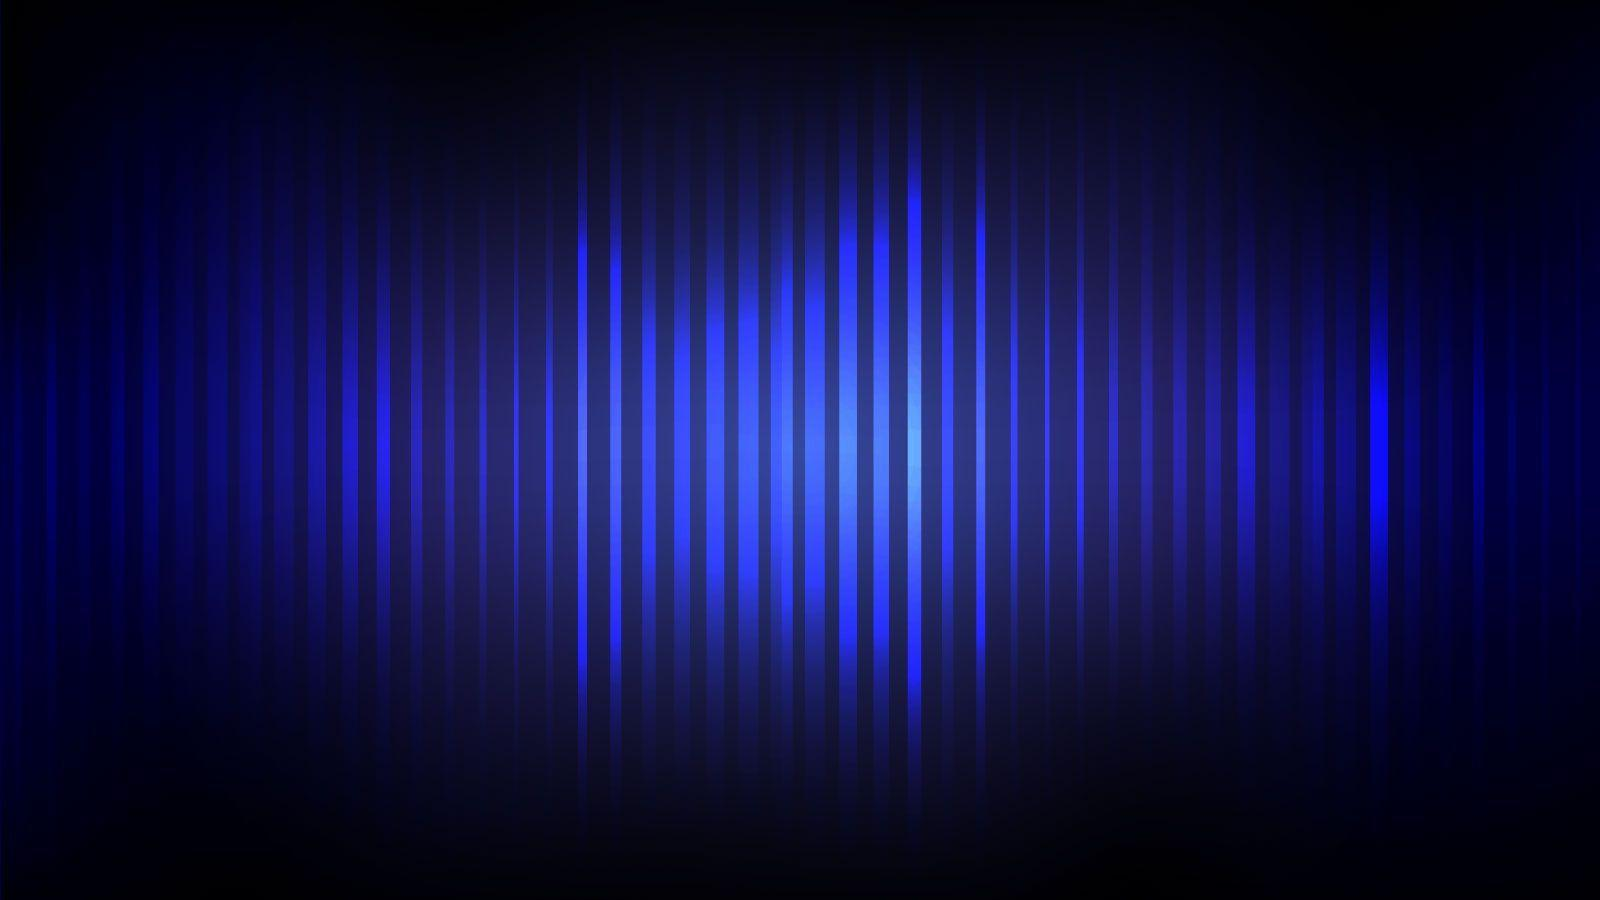 Sound Wave Wallpapers 1600x900